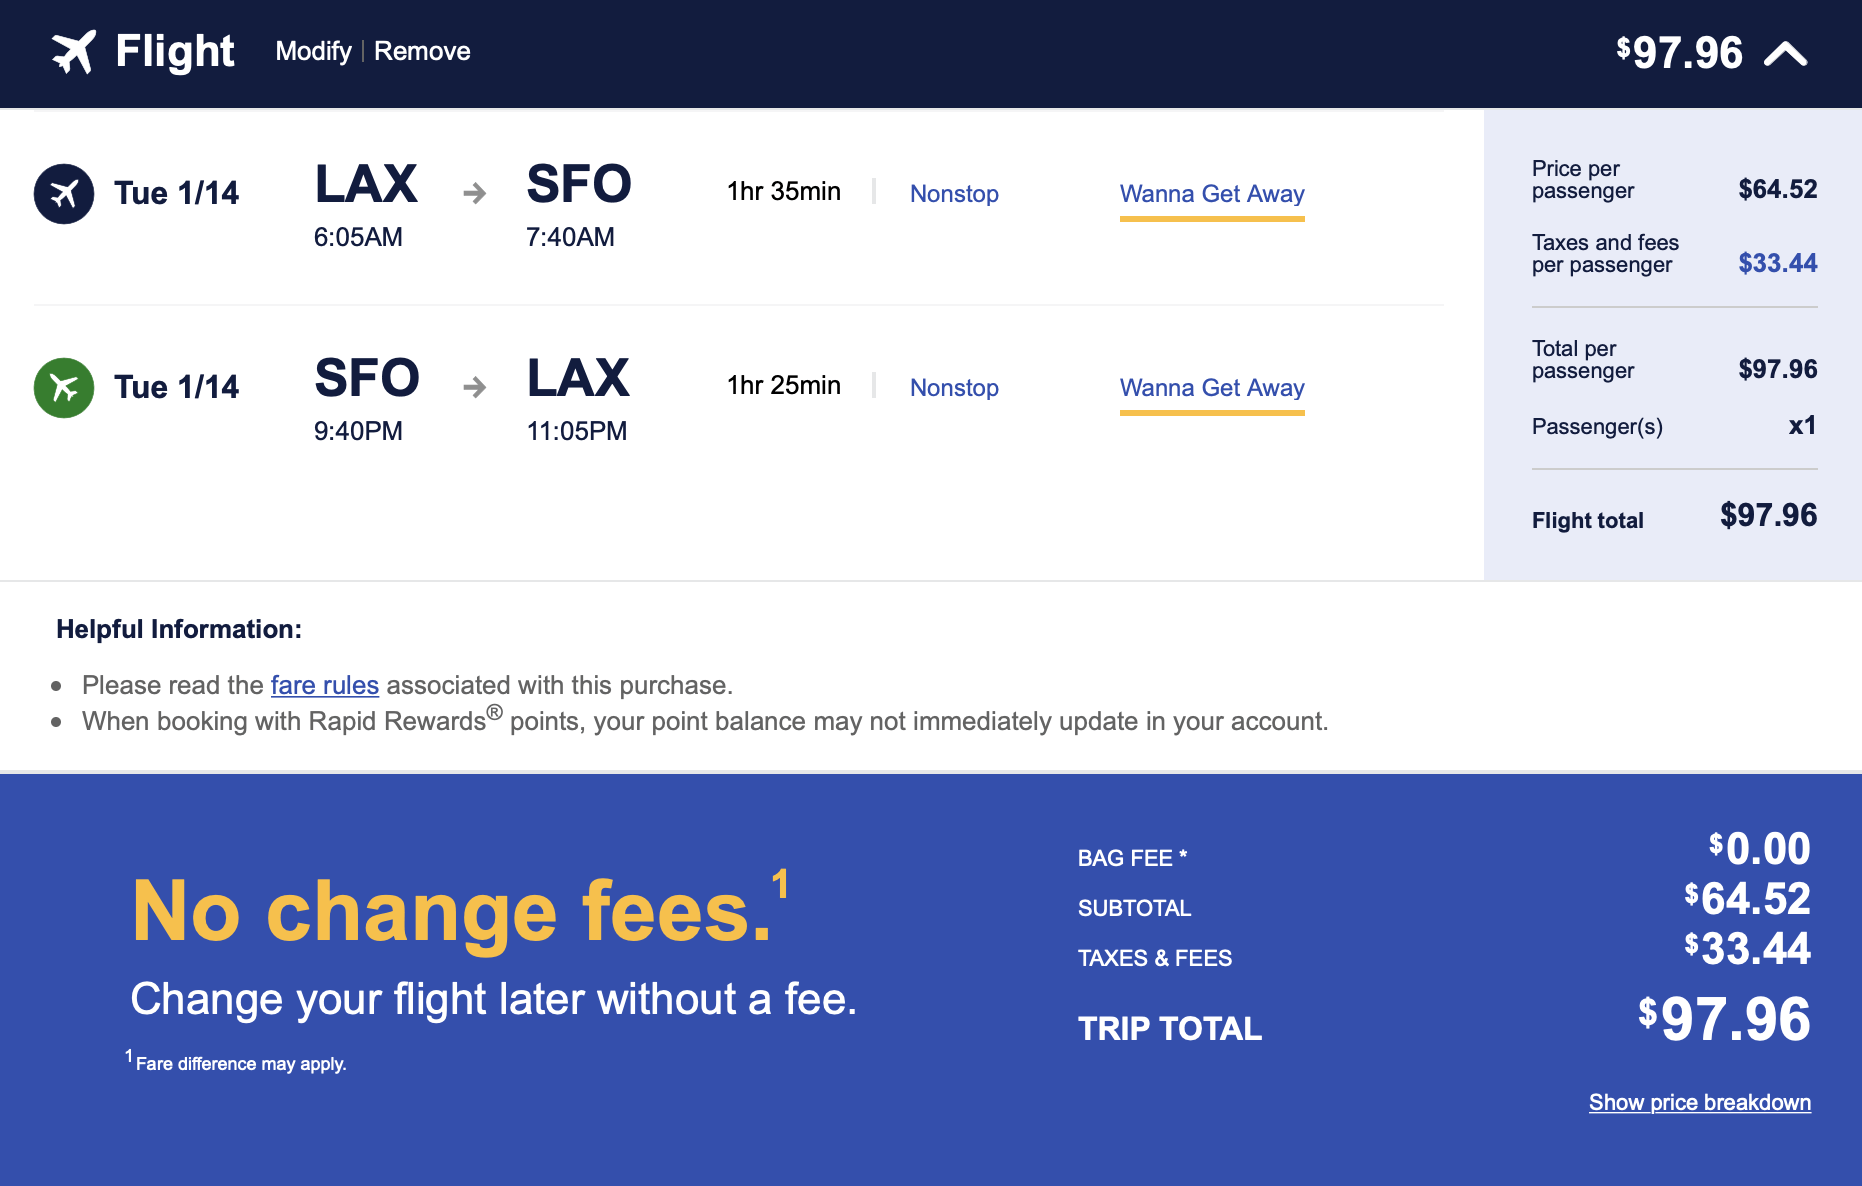 Note that although flights are blocked for an hour and a half, it actually takes under an hour.